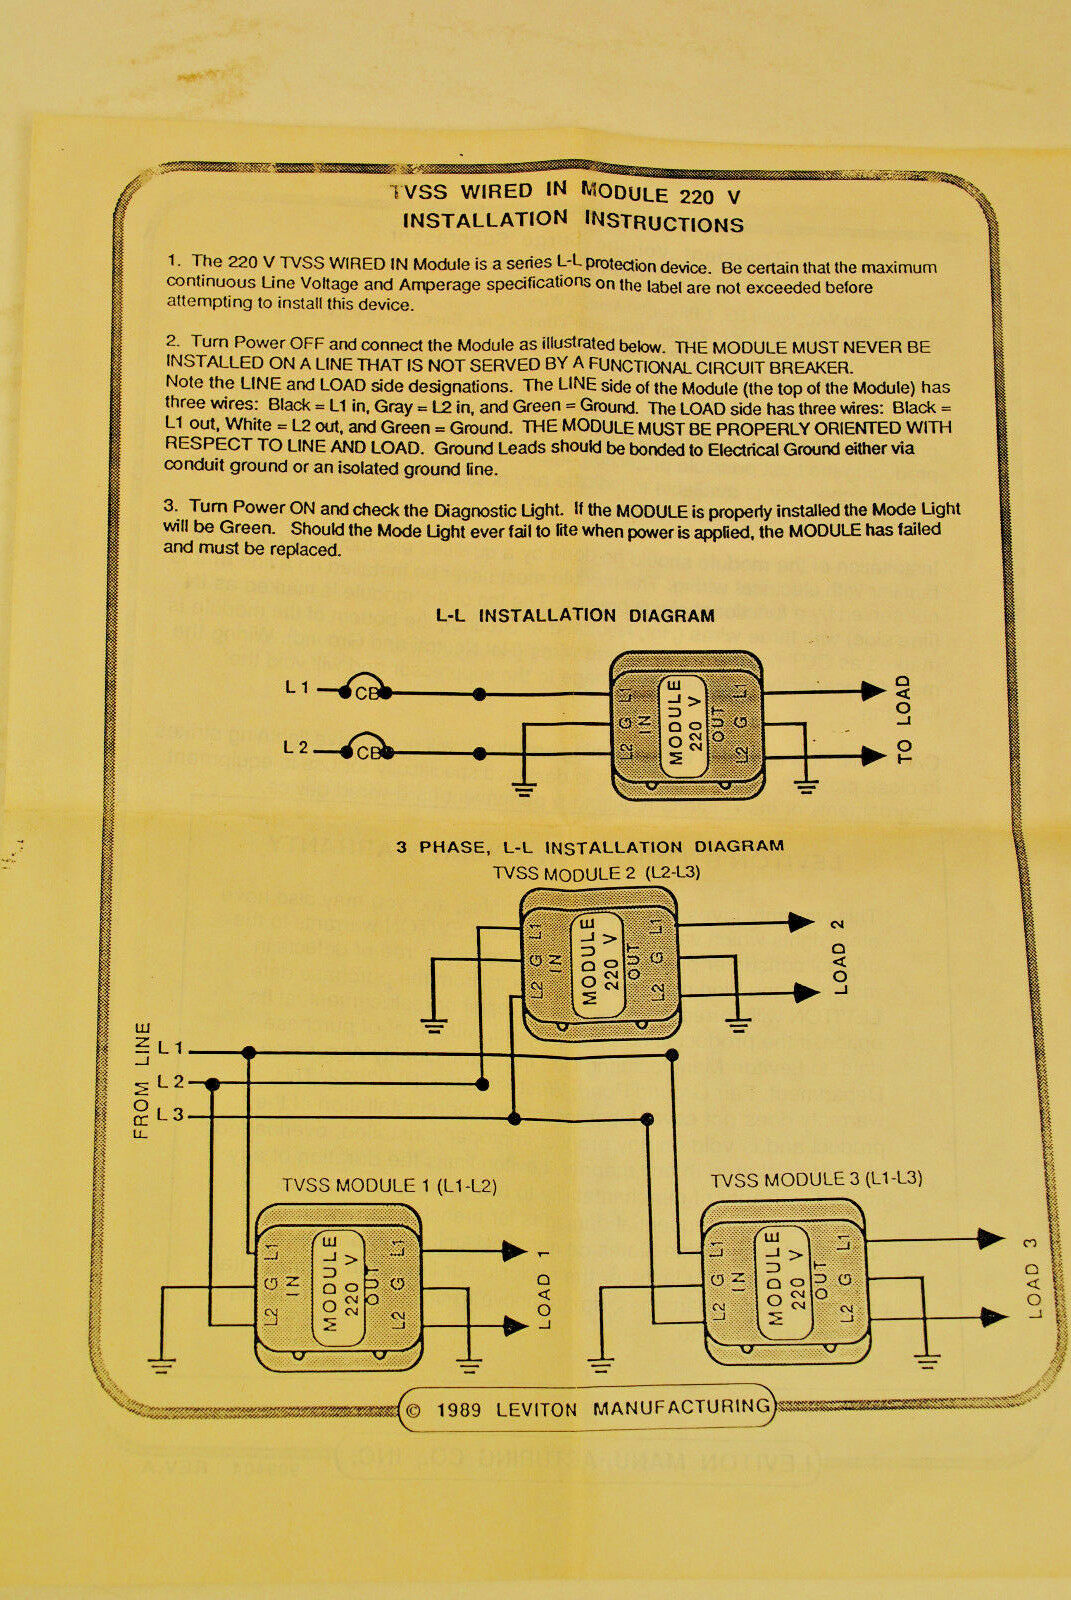 Tvss Breaker Wiring Diagram Electrical Diagrams Switch Together With 220 Volt Leviton 51210 Wm 220v 1 Ph 10a Transient Voltage Surge Suppressor Dc